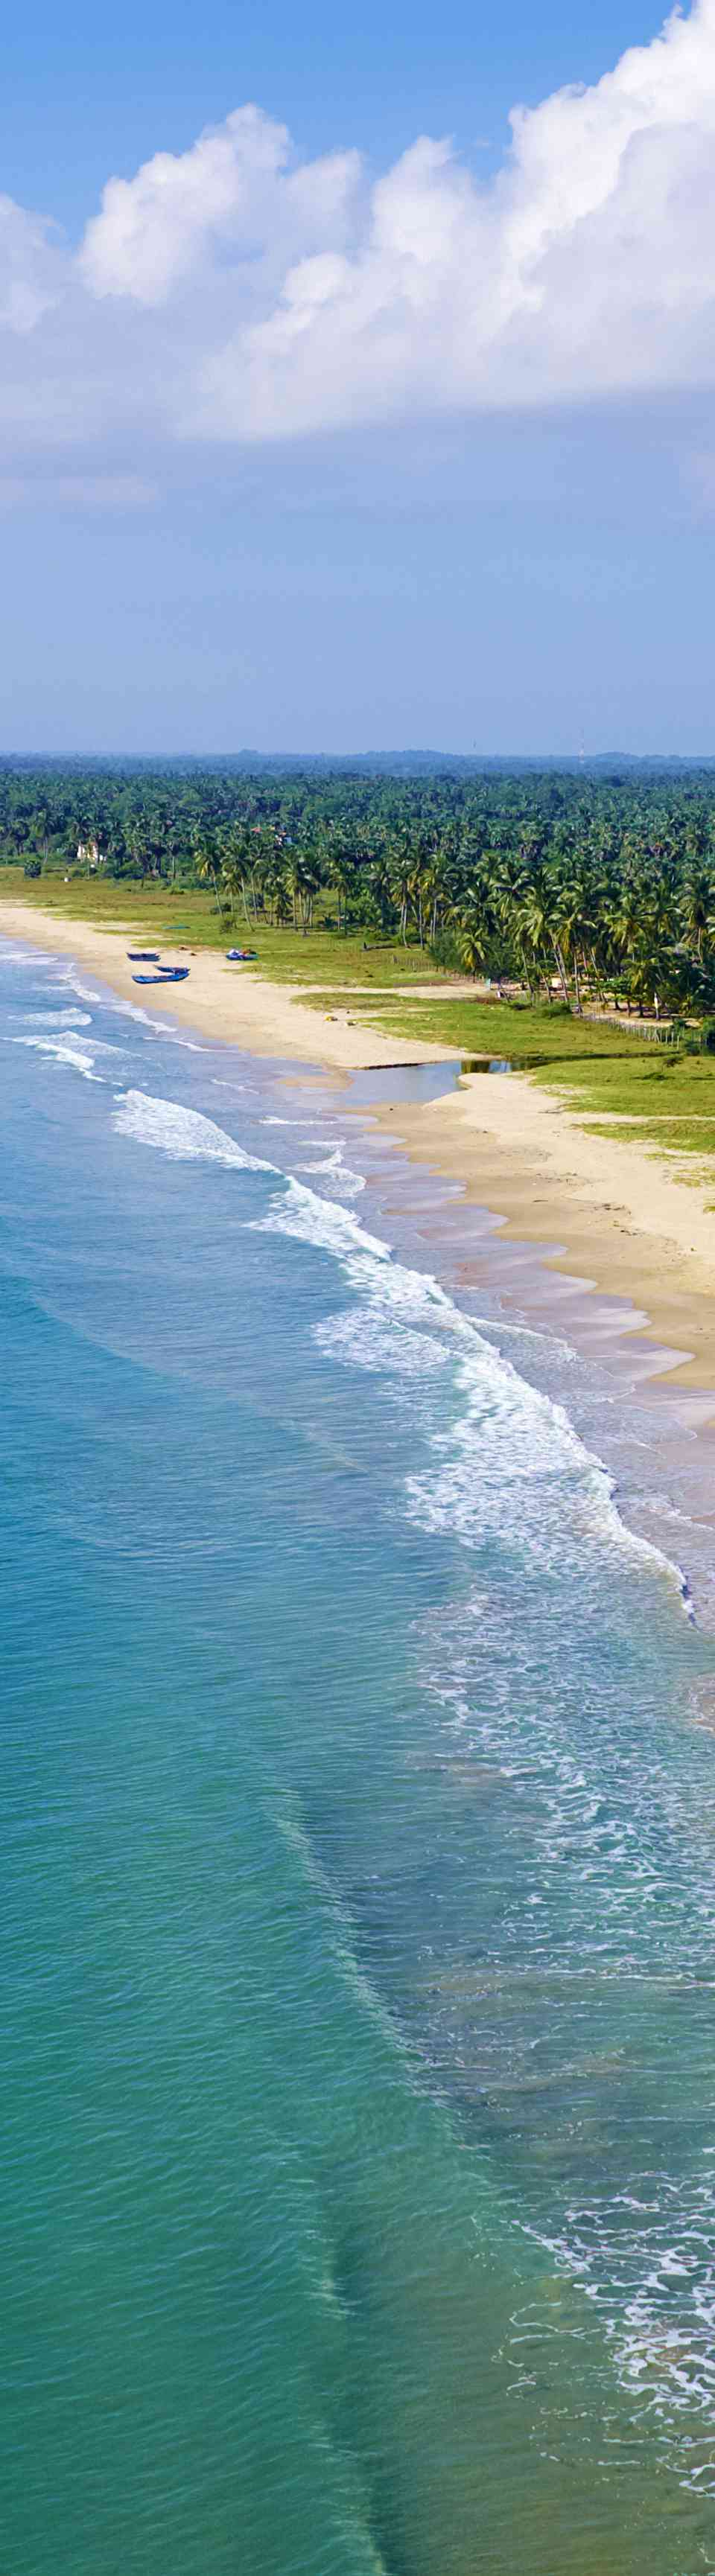 Blue water and an undeveloped beach in Sri Lanka